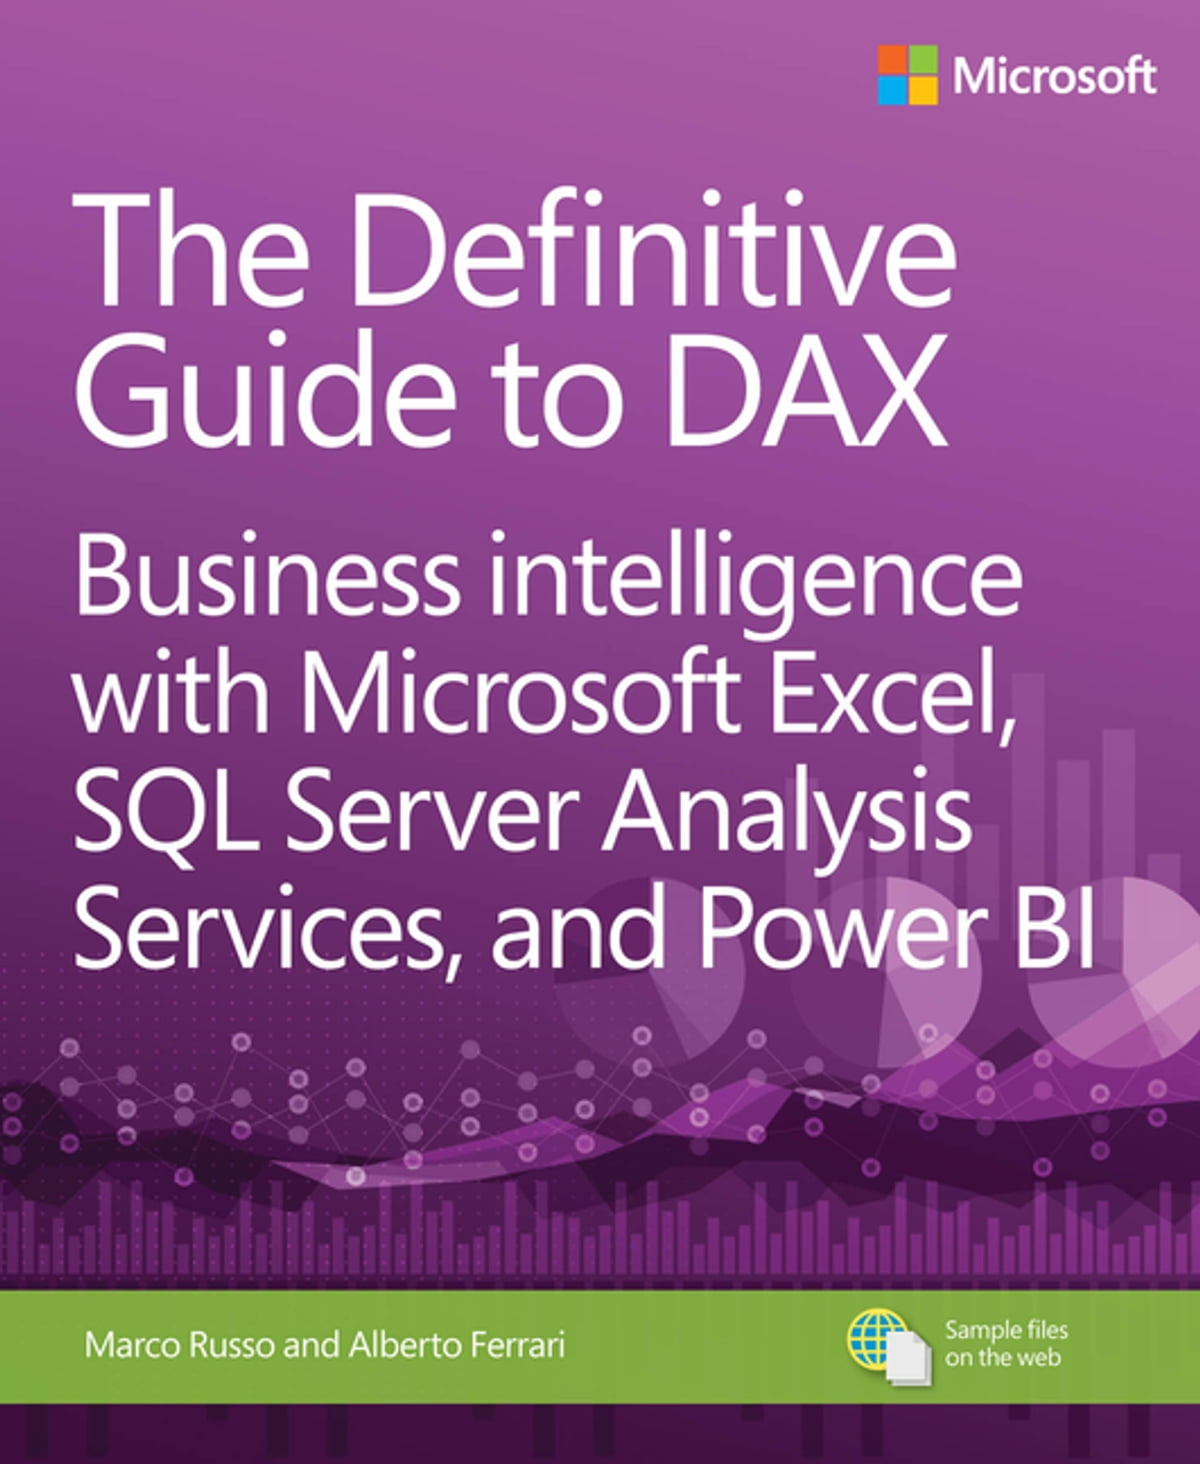 The Definitive Guide to DAX - Business intelligence with Microsoft Excel, SQL  Server Analysis Services